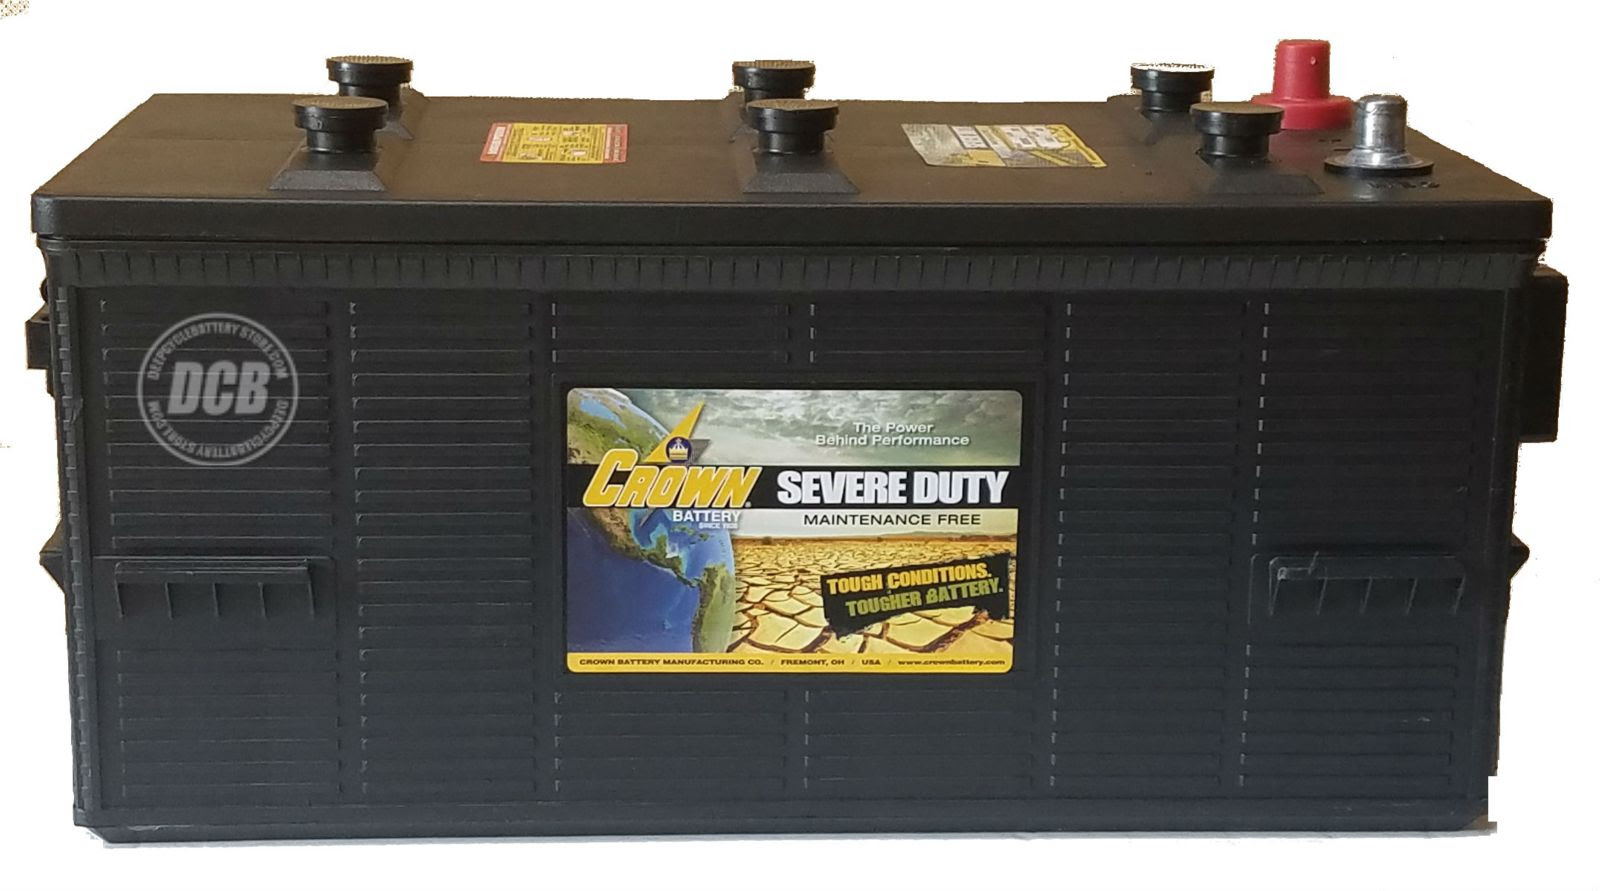 Crown Severe Duty Battery